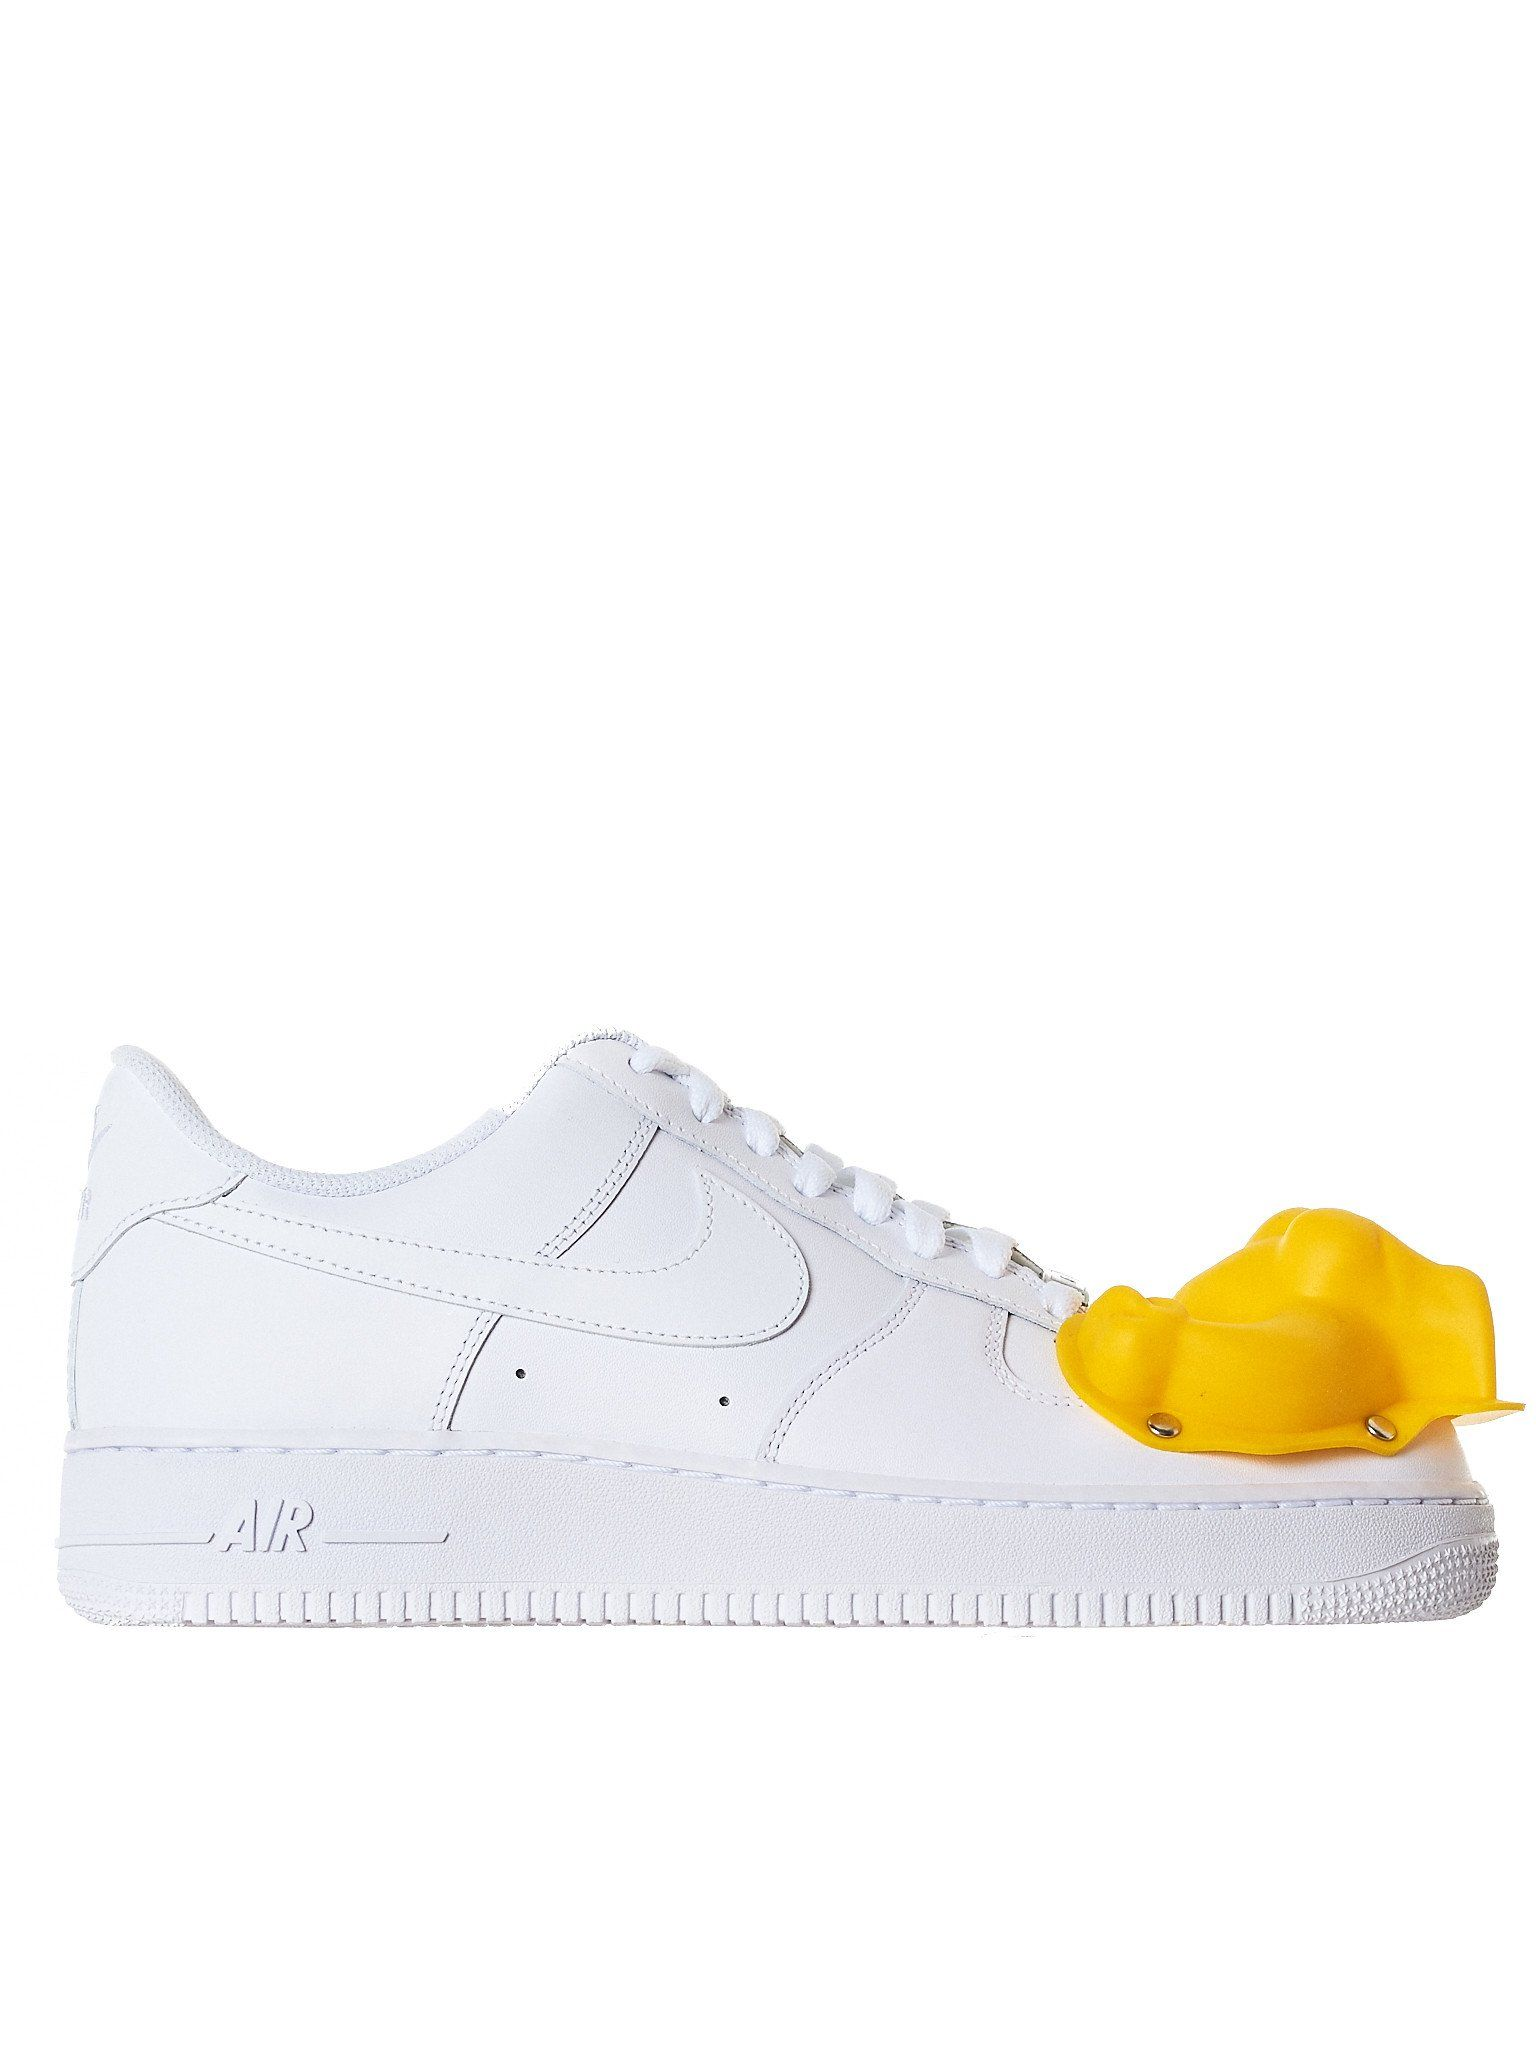 45270cd1bb66 Nike x CDG Comme des Garçons x Nike Air Force Ones in white featuring a  silicone-based riveted